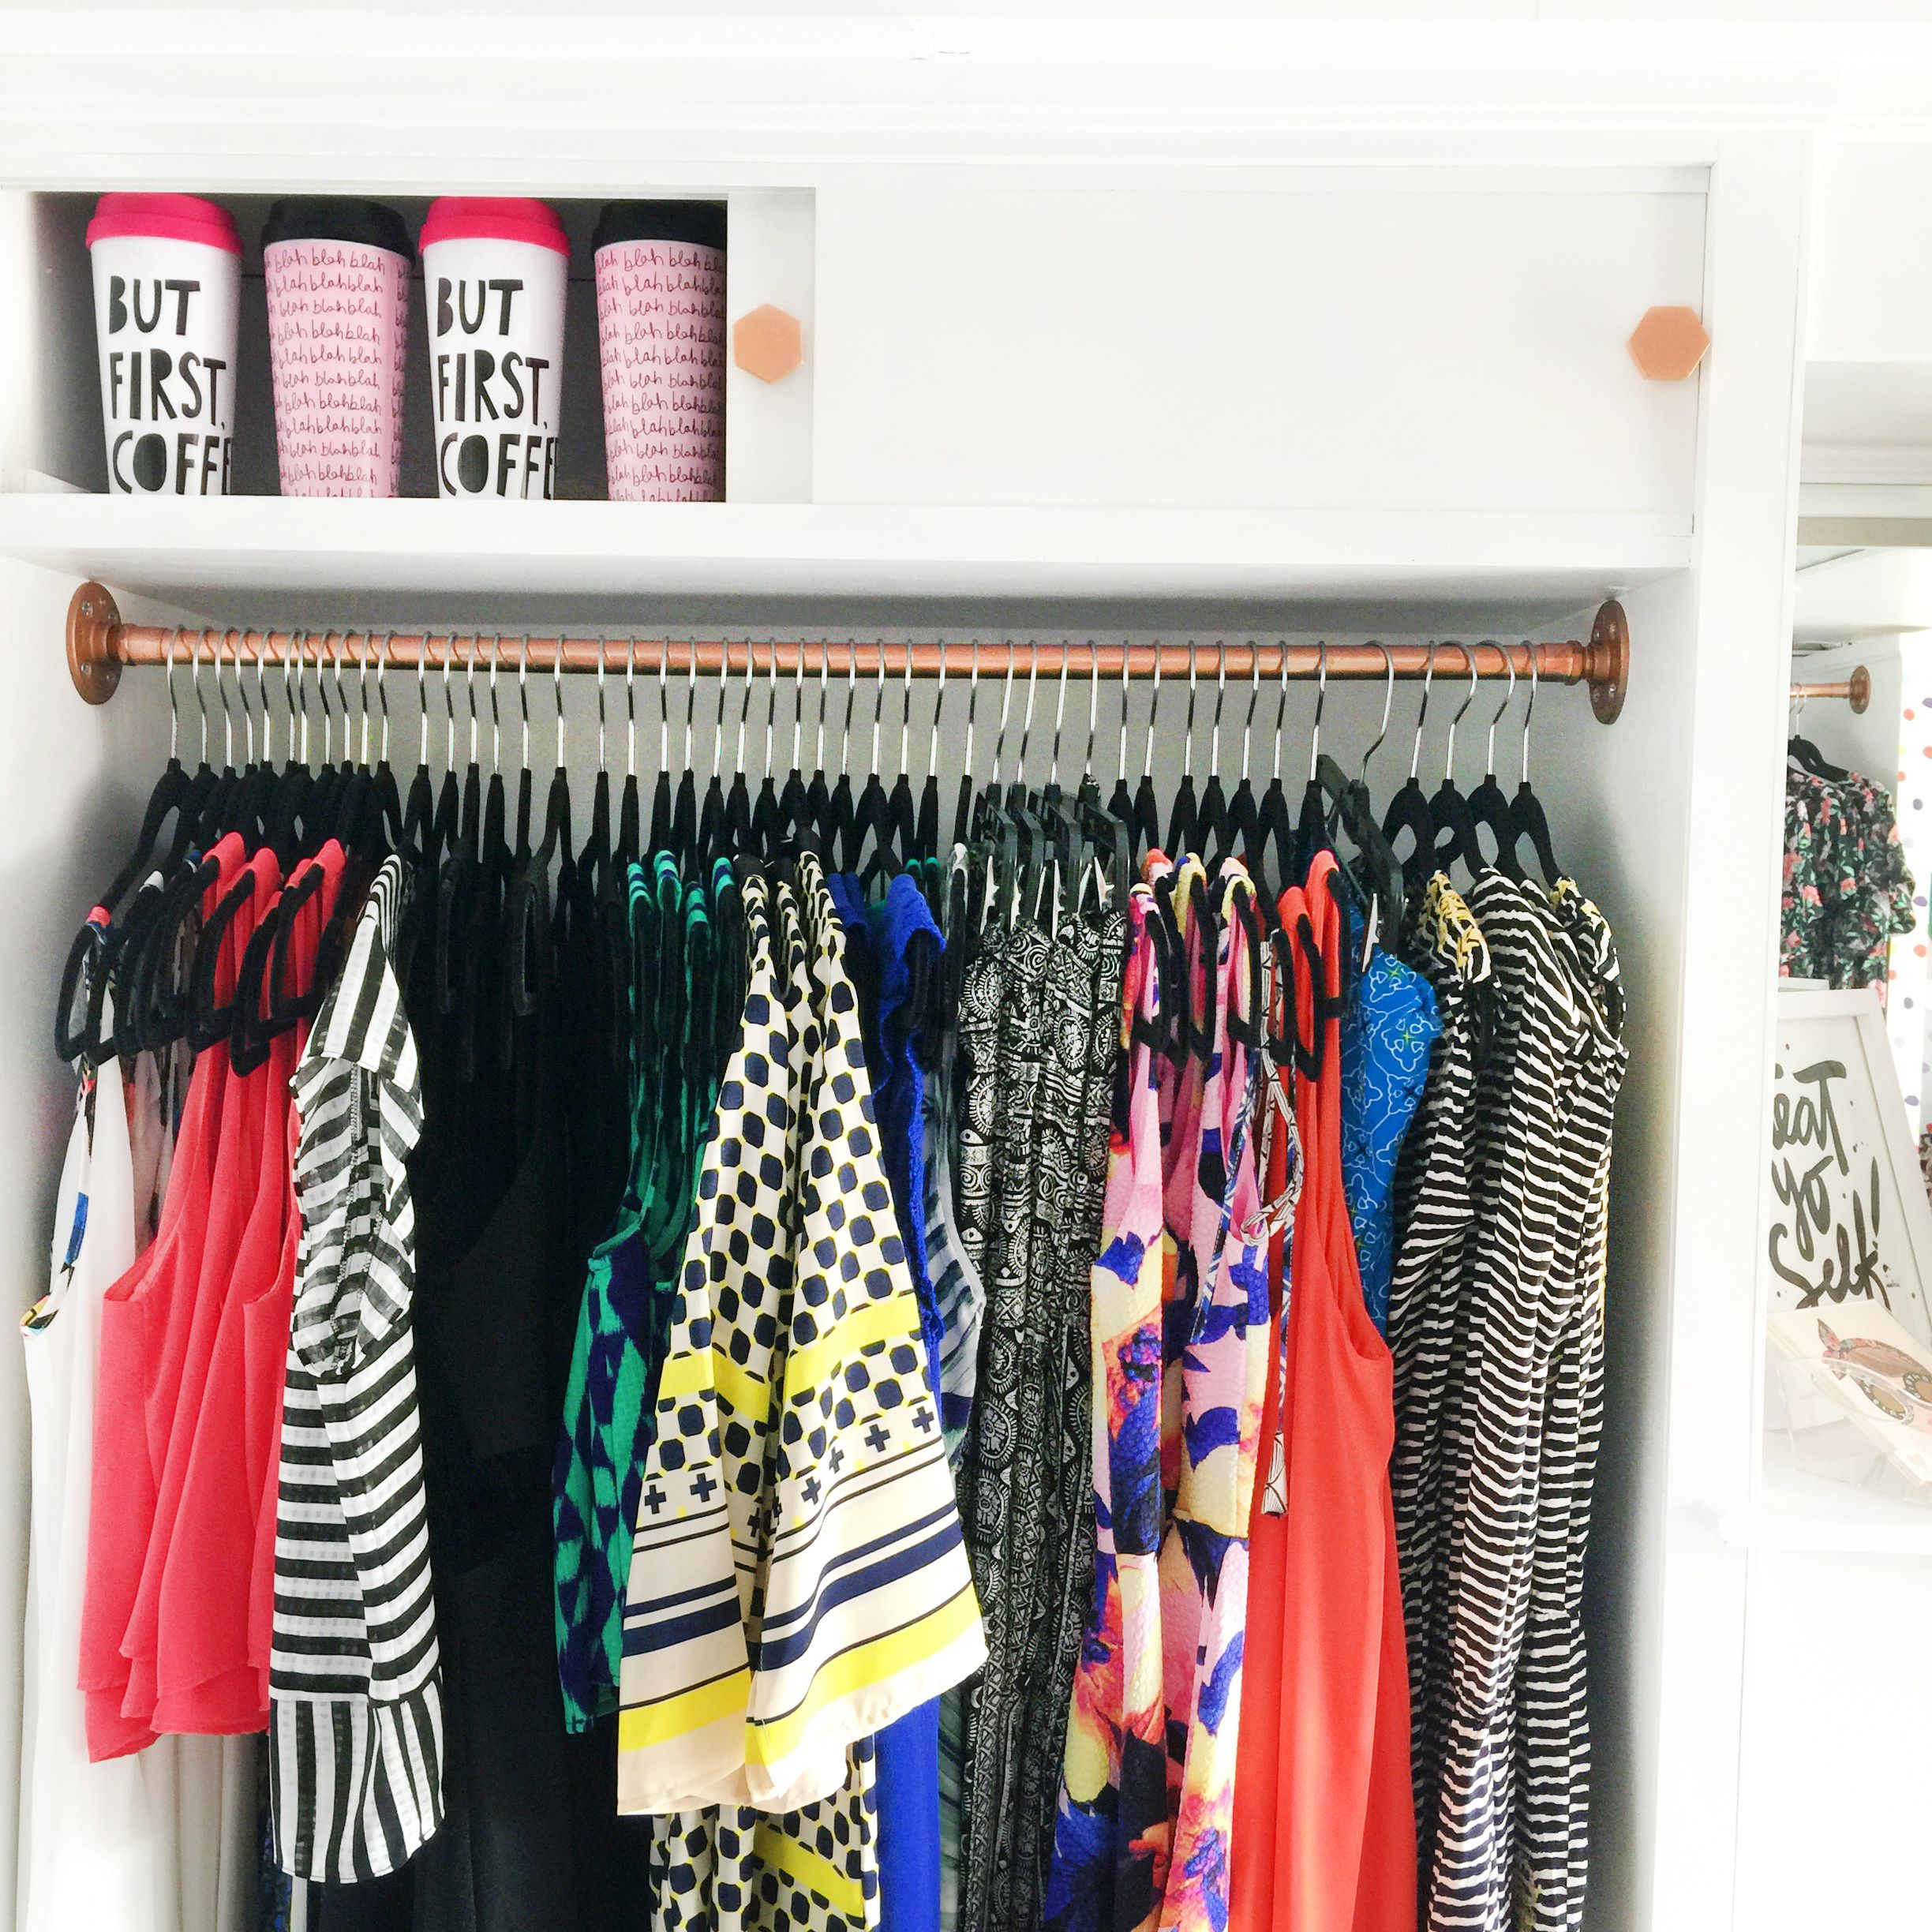 details from the patterns pops mobile boutique interior design